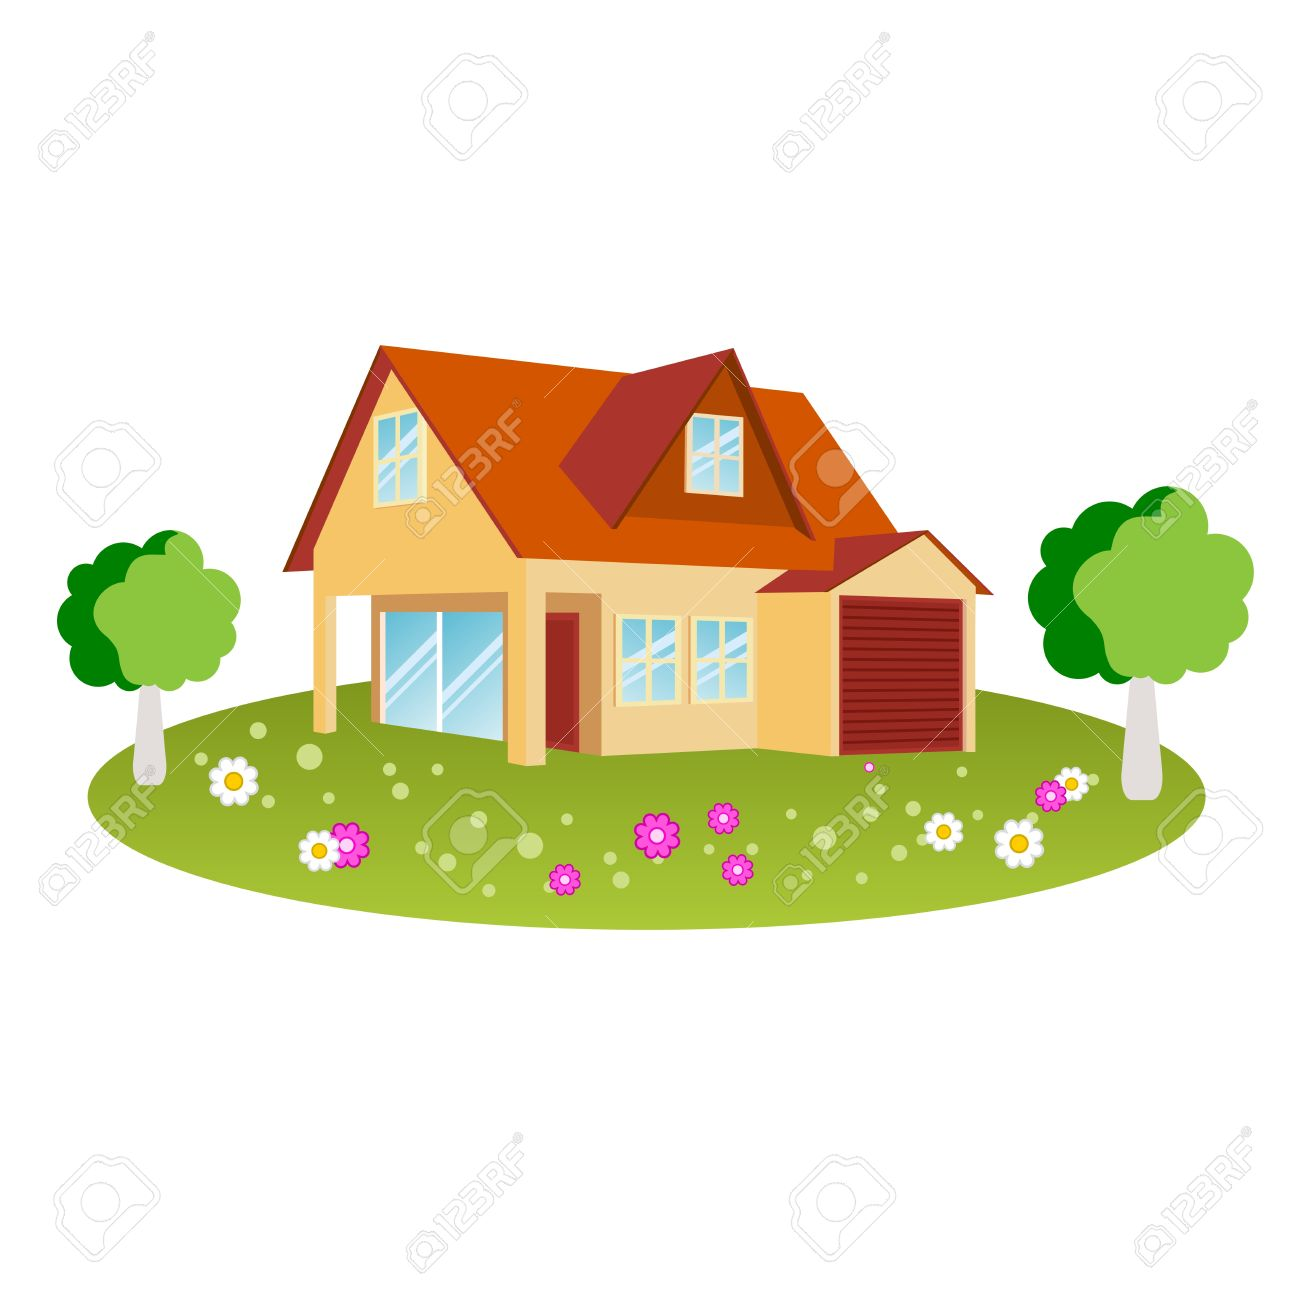 House Design With Flowers And Trees Royalty Free Cliparts, Vectors.